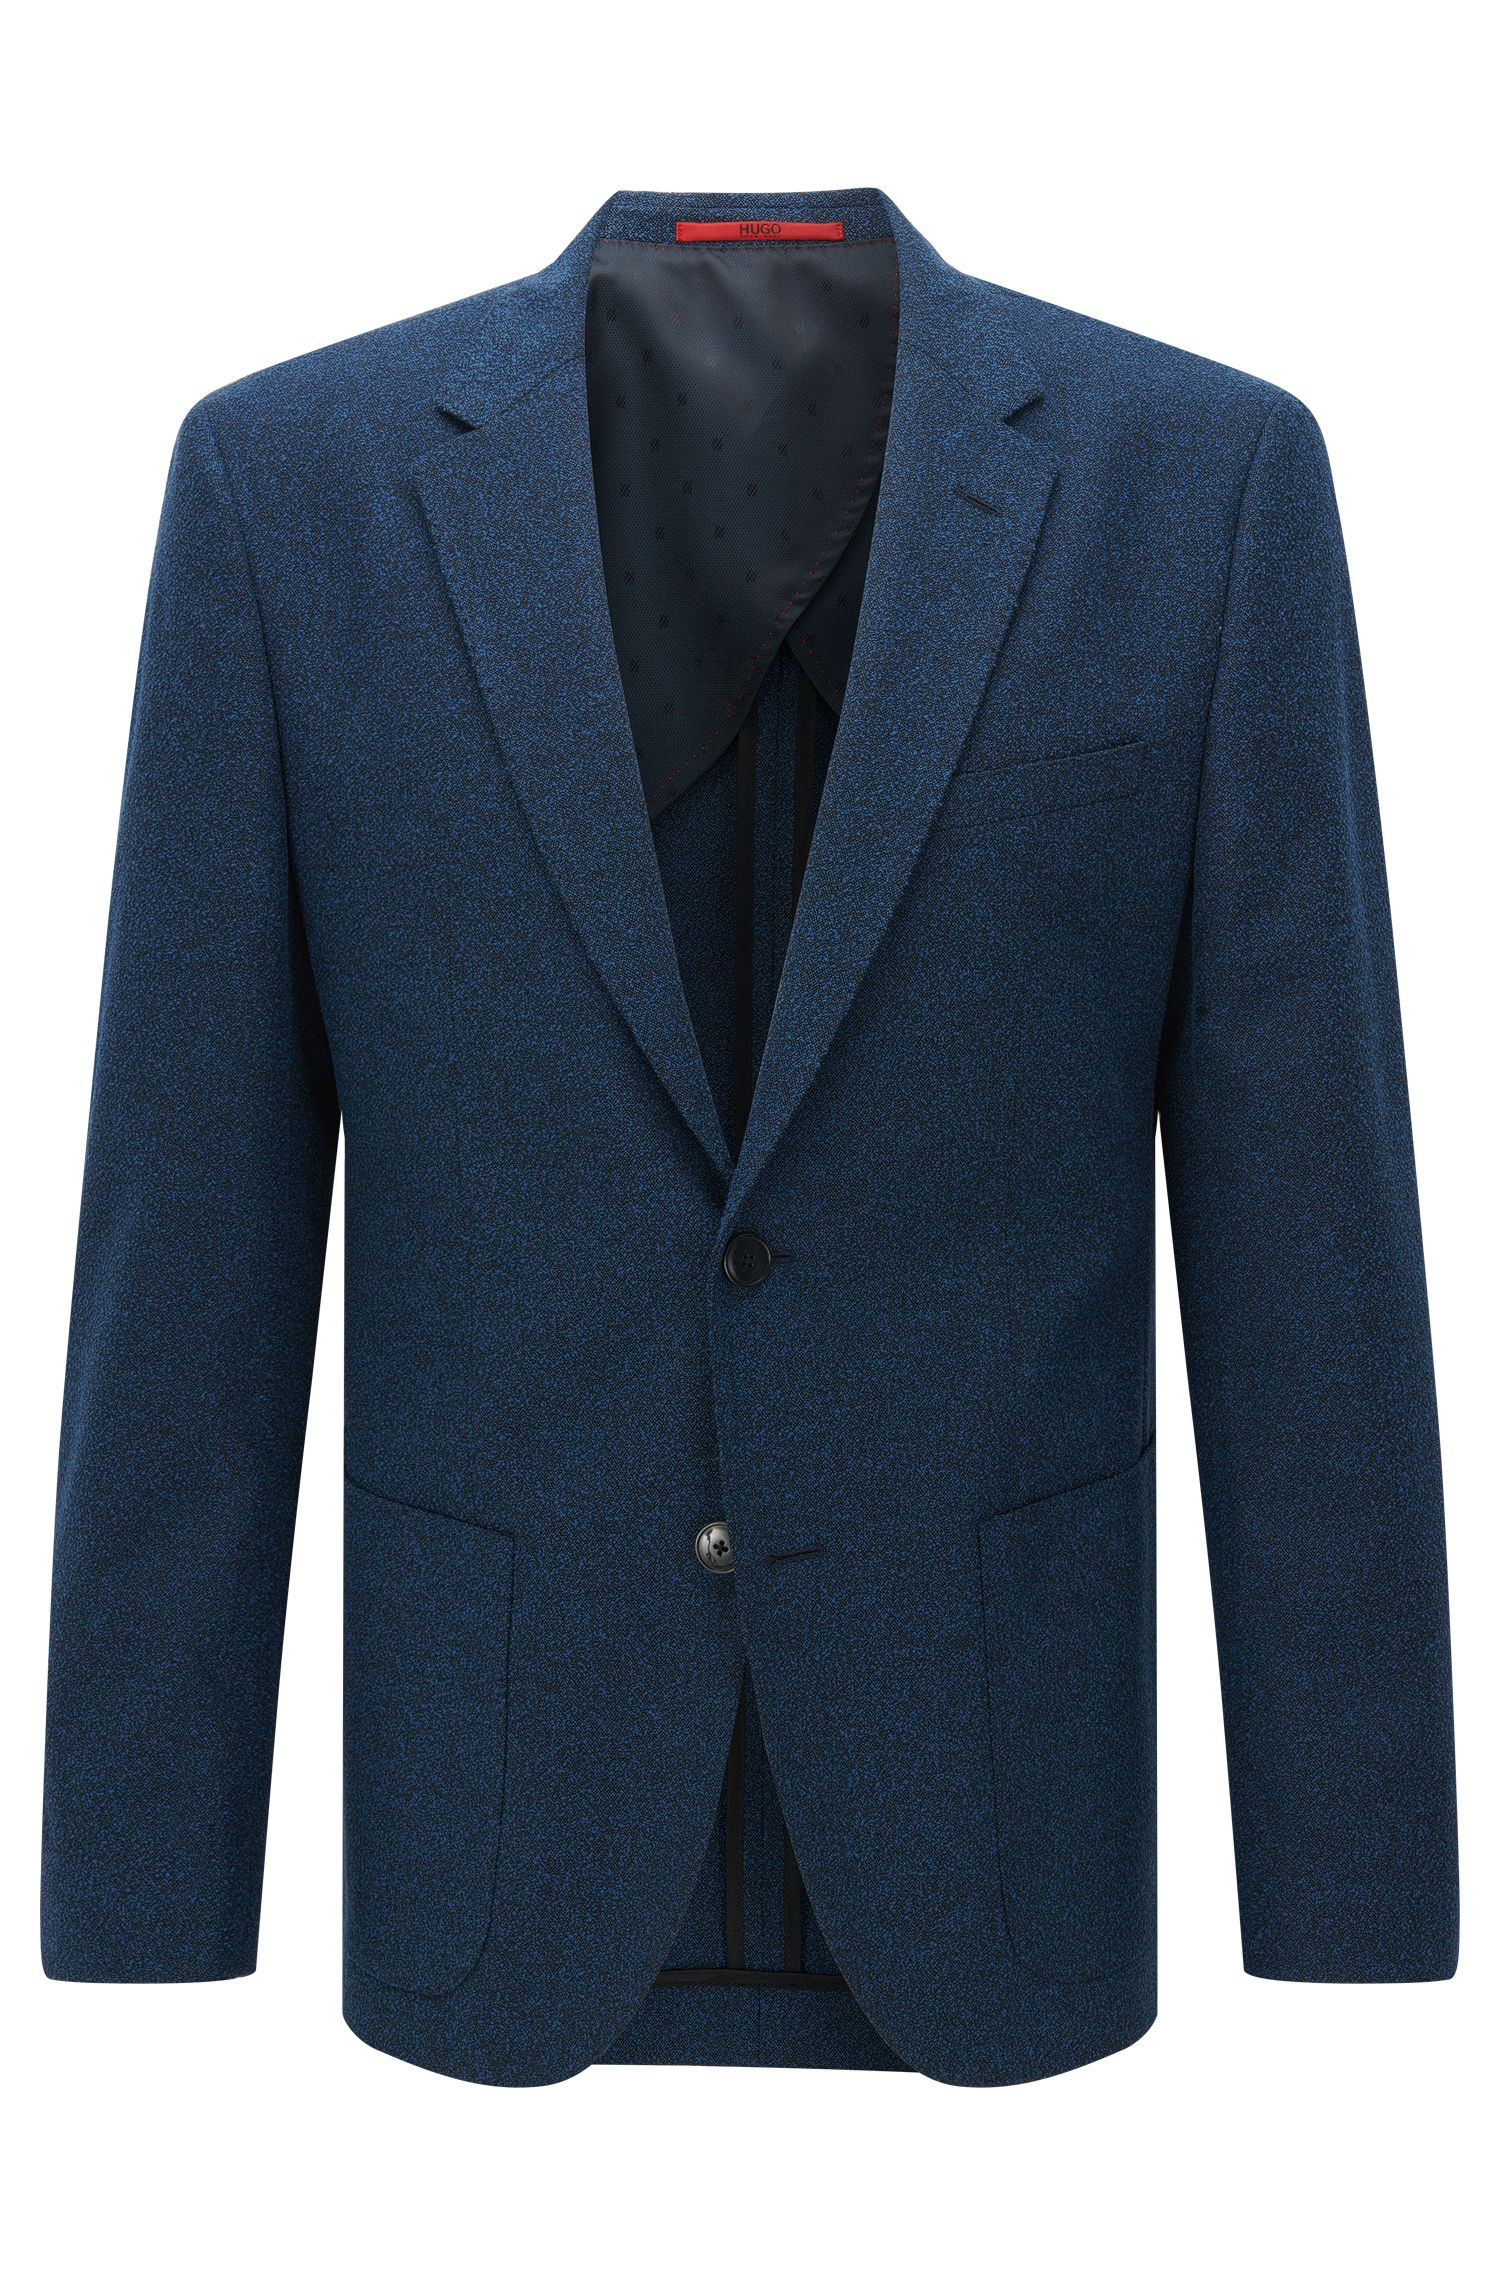 Regular-fit jacket in textured cotton blend